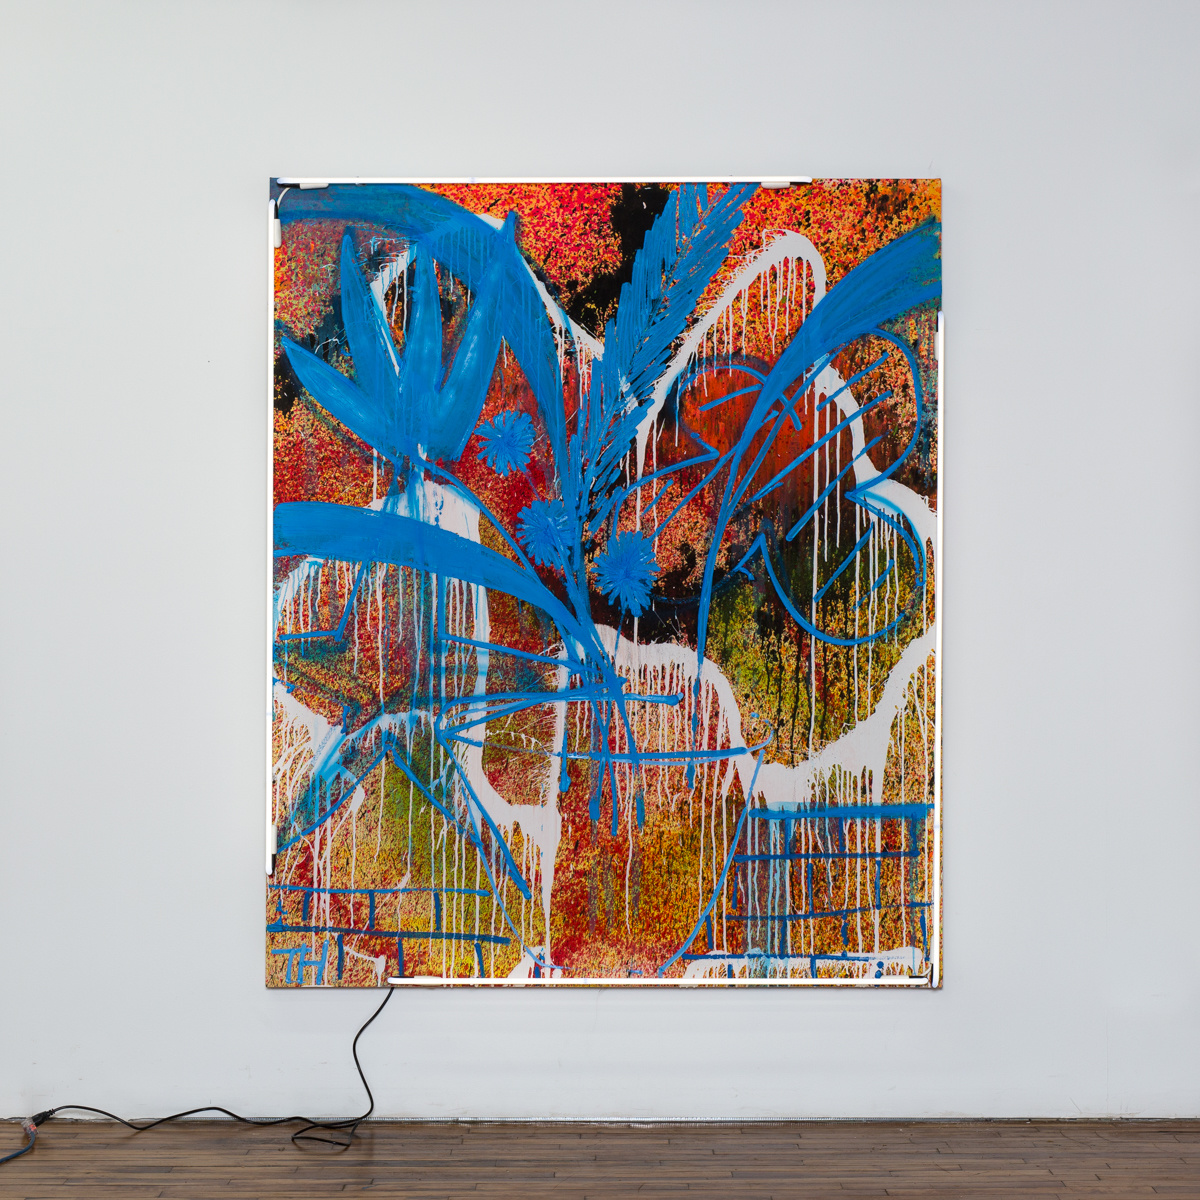 Thrush Holmes  -  S.O.S ., 2019 Acrylic, oil and neon on canvas 72h x 60w inches